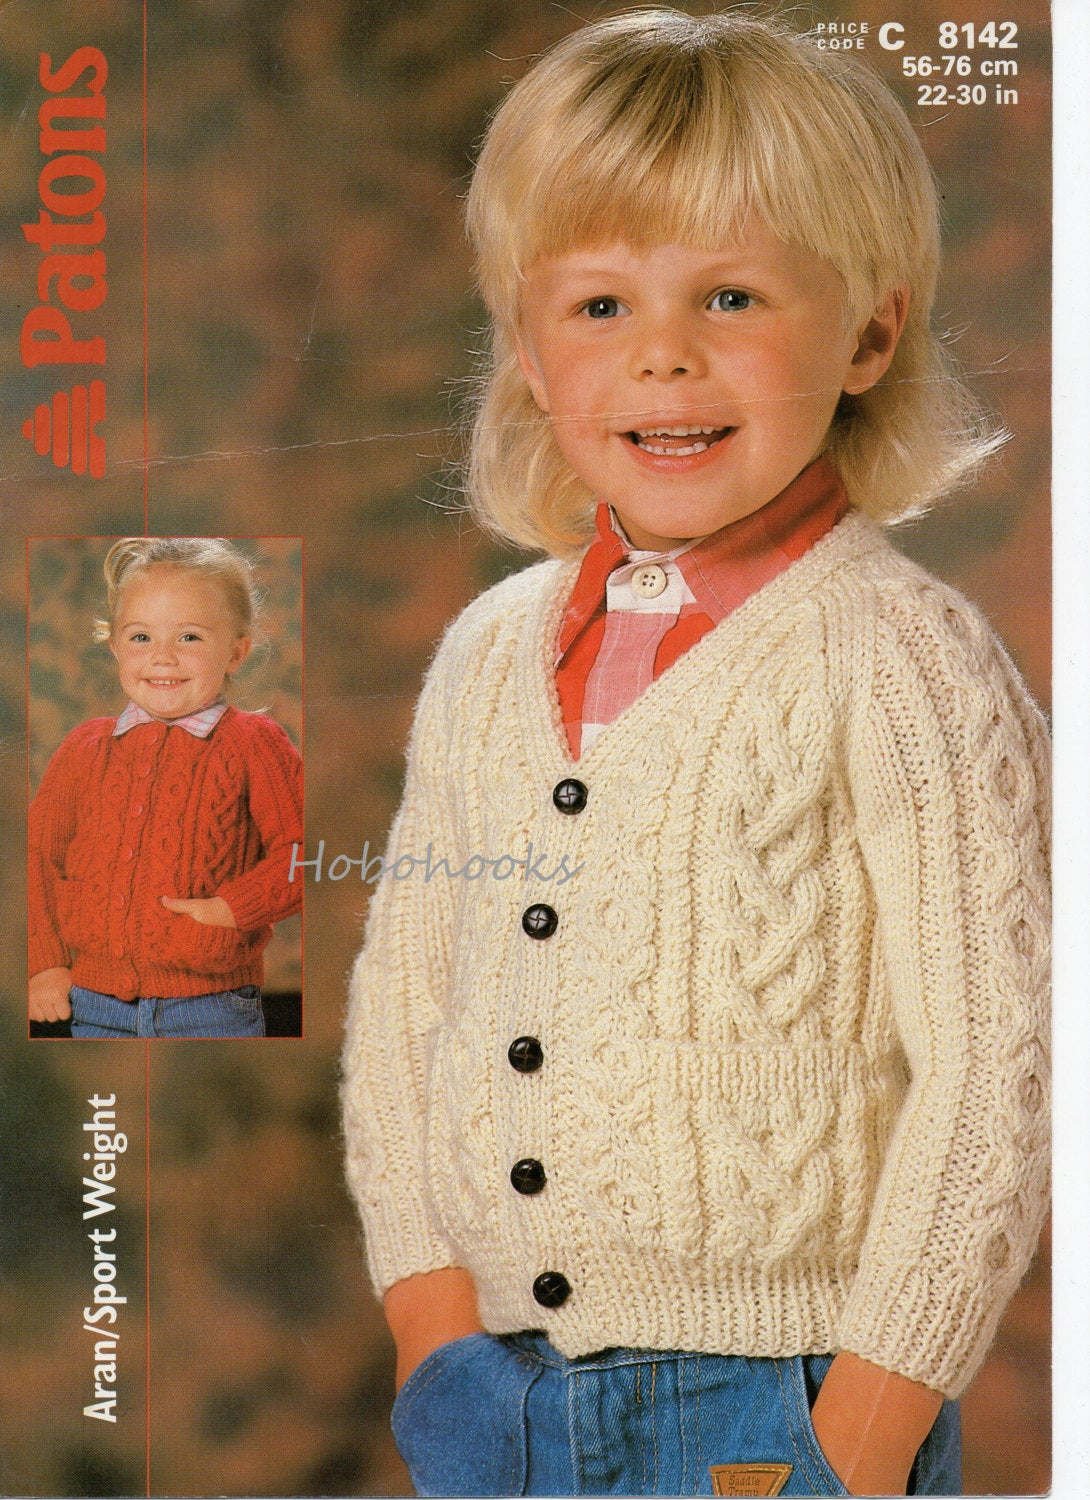 Childrens Aran Knitting Patterns Free Aran Knitting Patterns Children